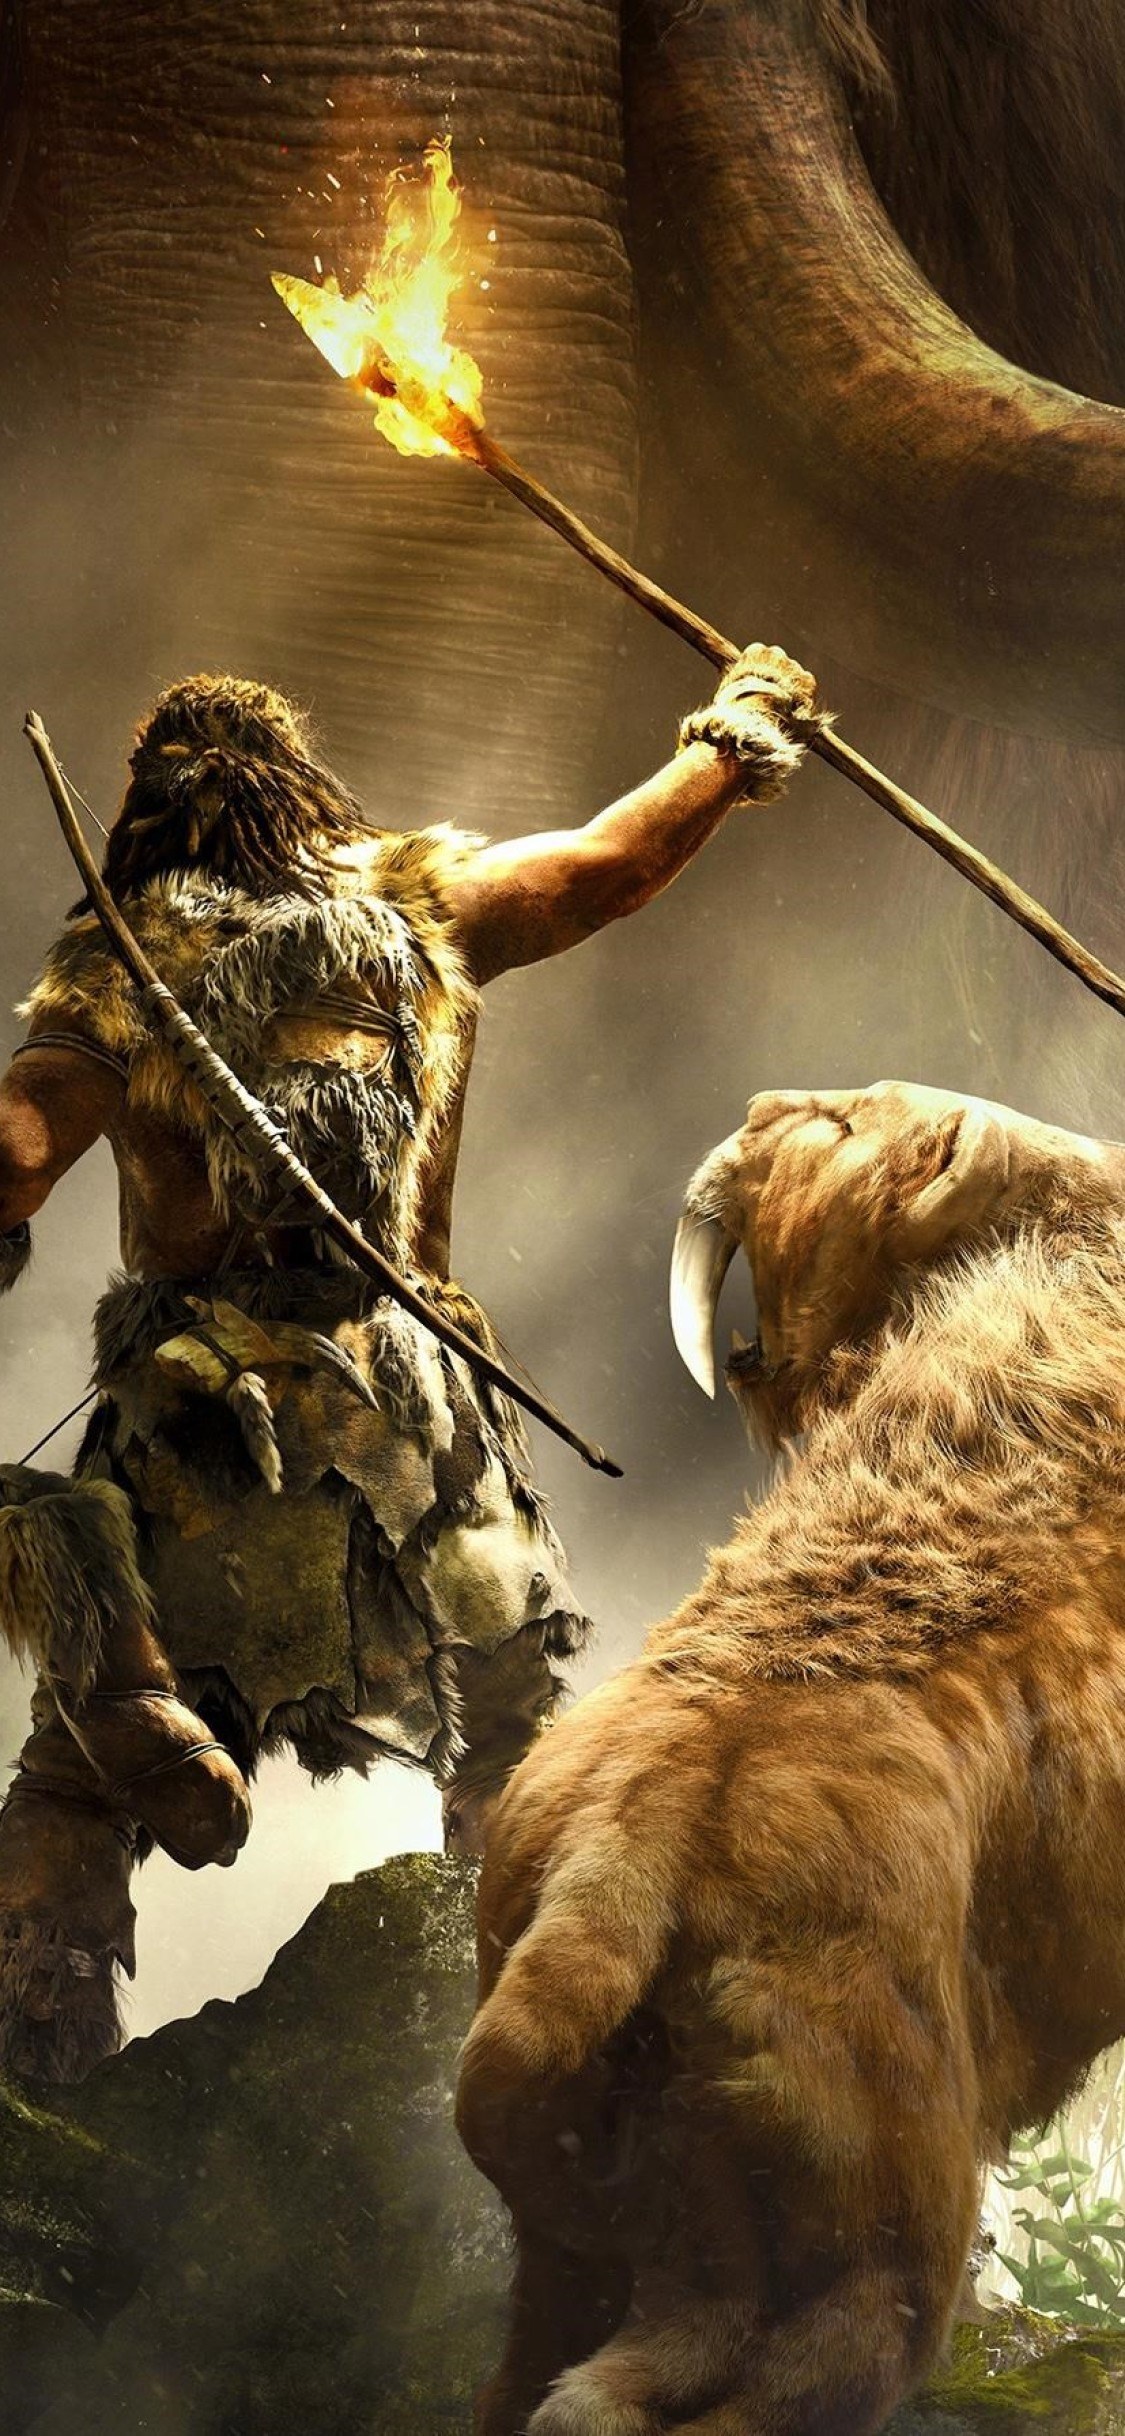 Mobile Far Cry Primal 1125x2436 Wallpaper Teahub Io